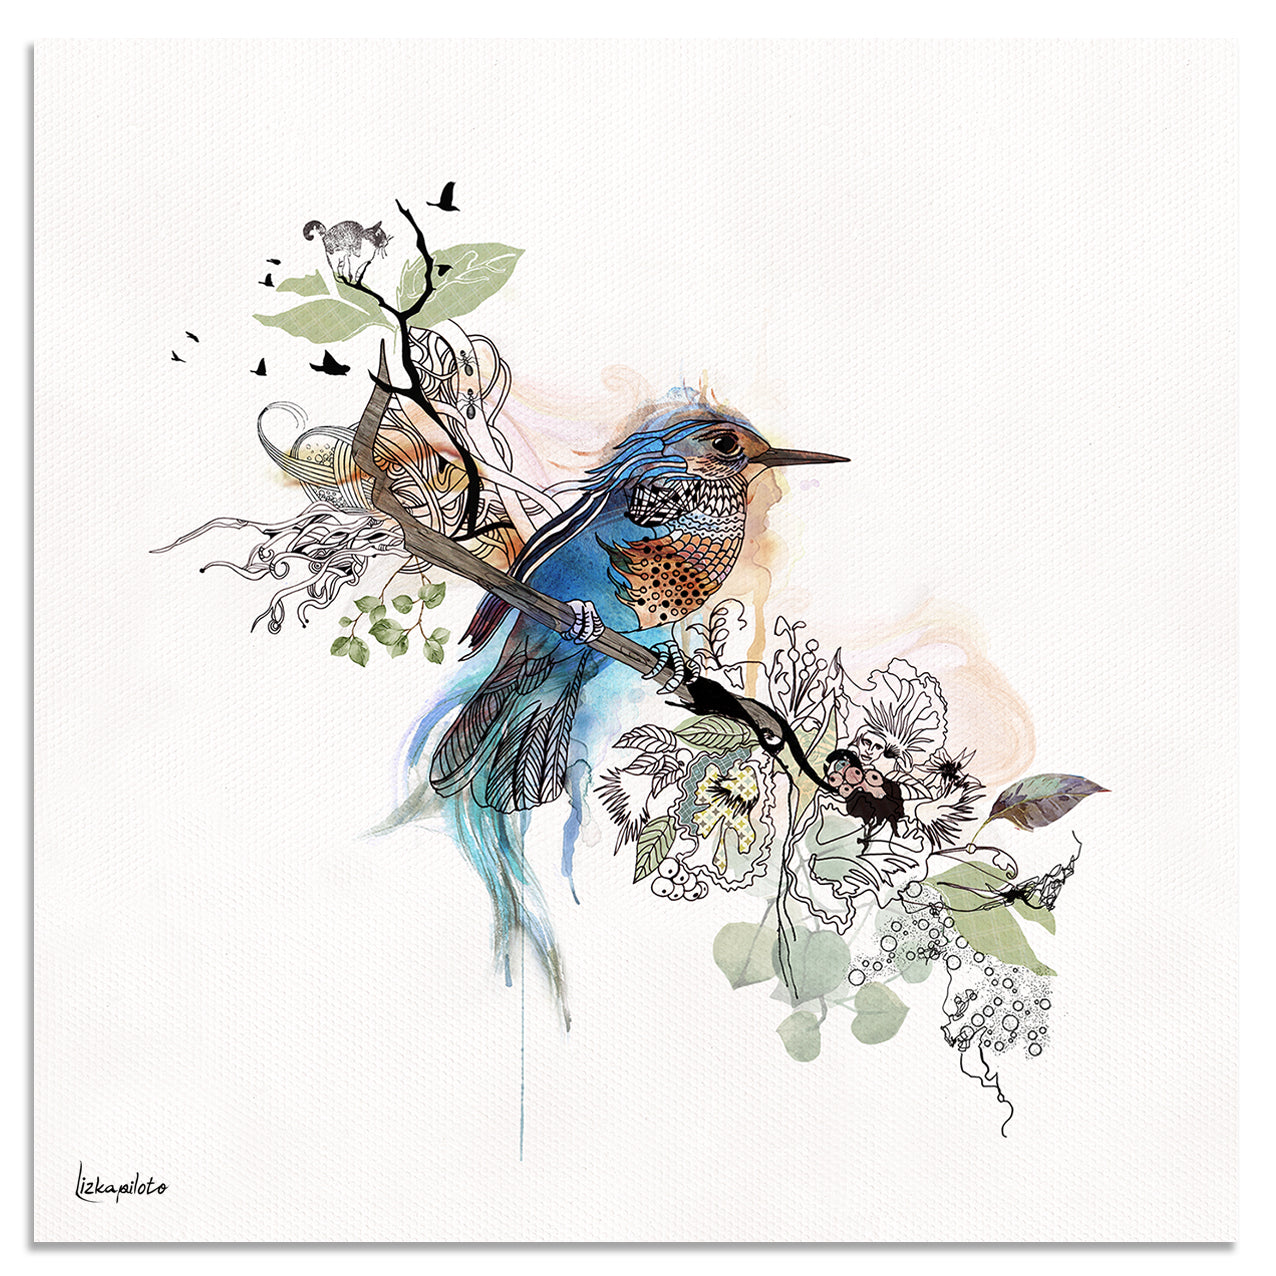 Bluebird Art - Liz Kapiloto Art & Design